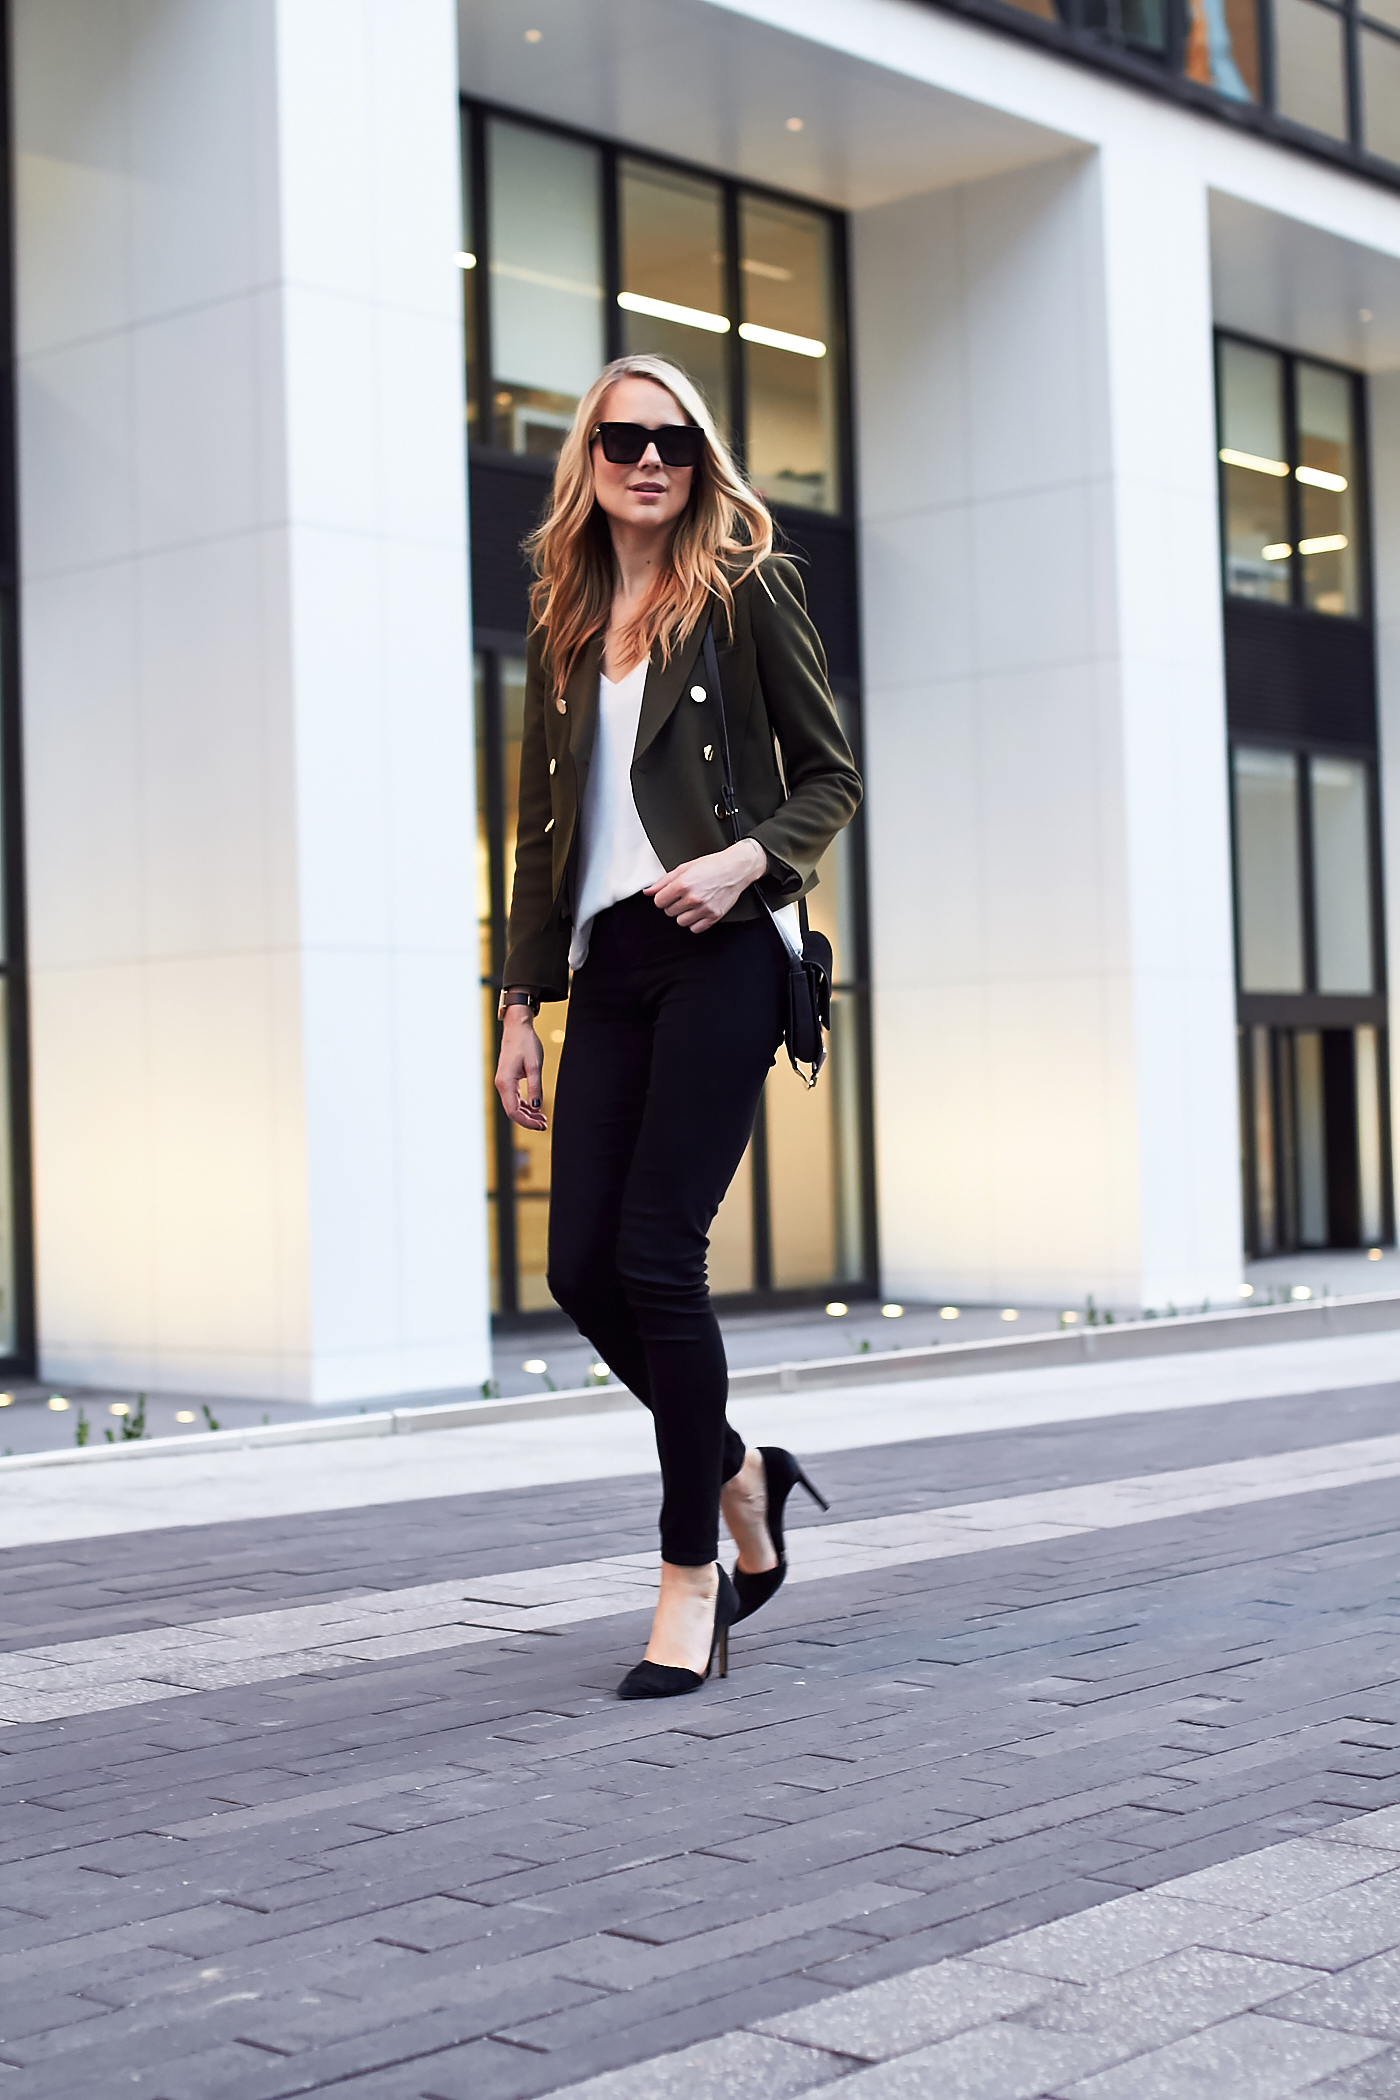 fashion-jackson-topshop-green-military-blazer-james-jeans-black-skinny-jeans-black-pumps